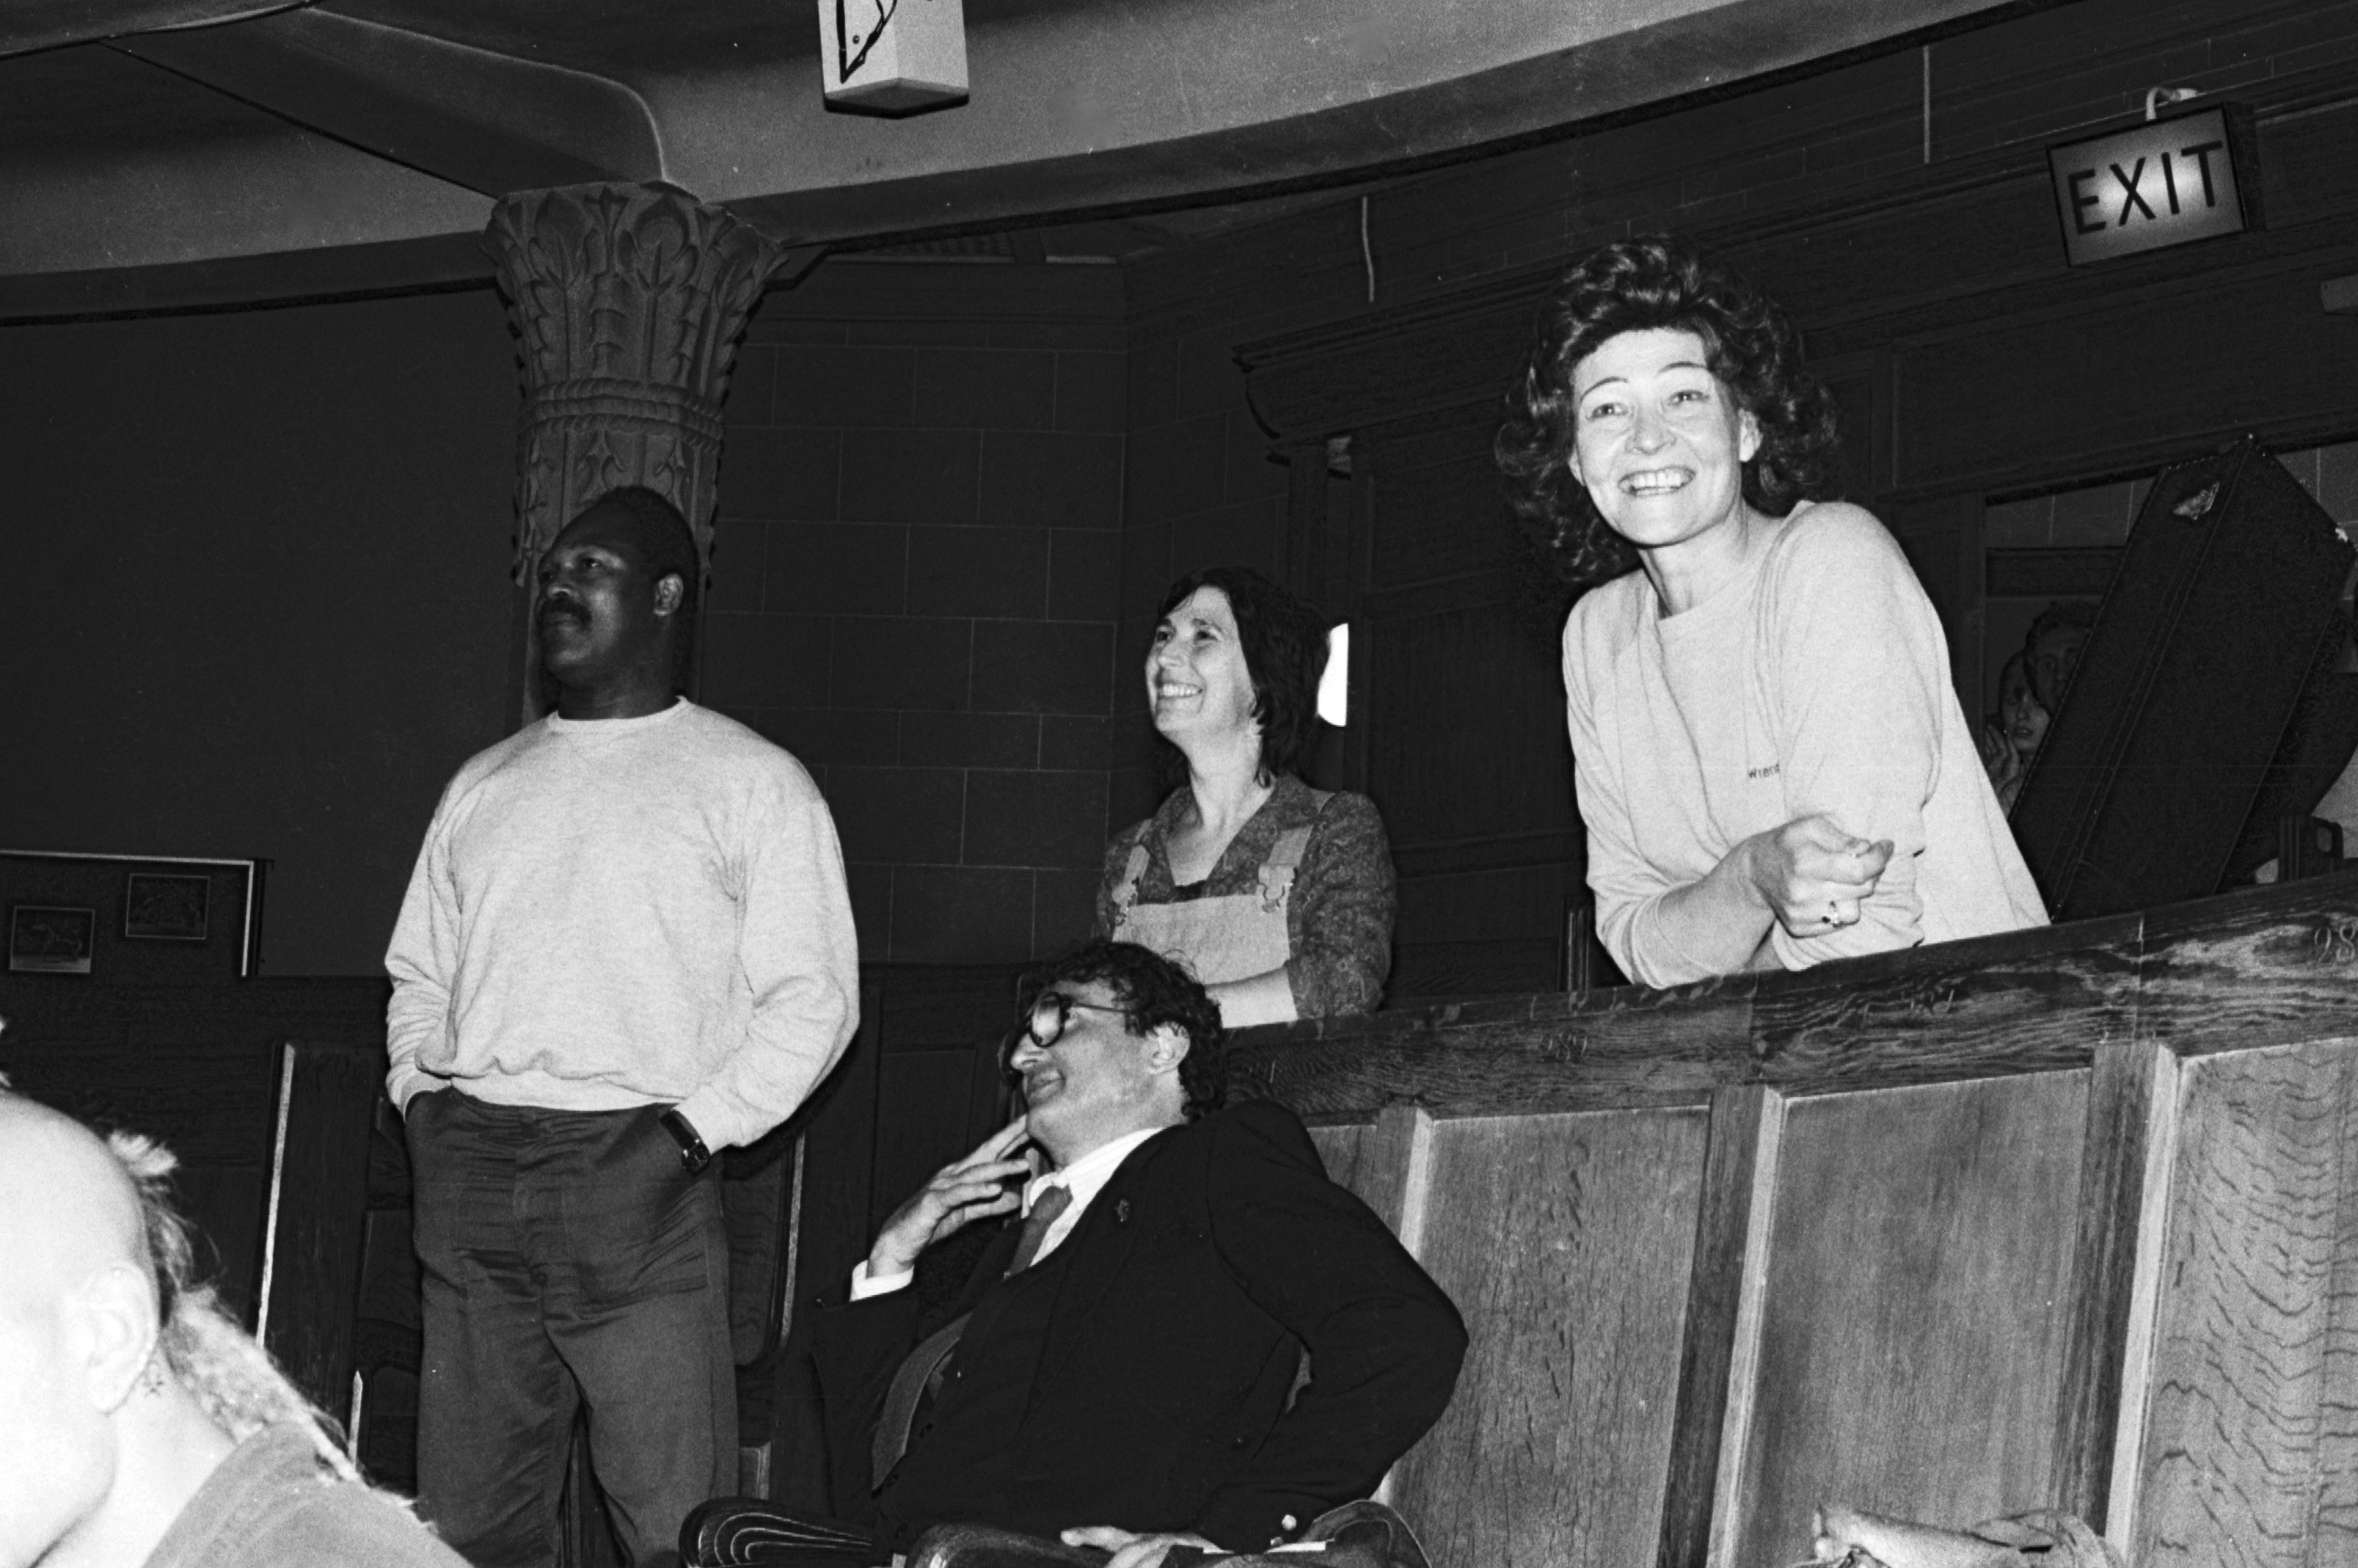 Black and white photo showing Nadine Senior leaning on theatre seats, with others